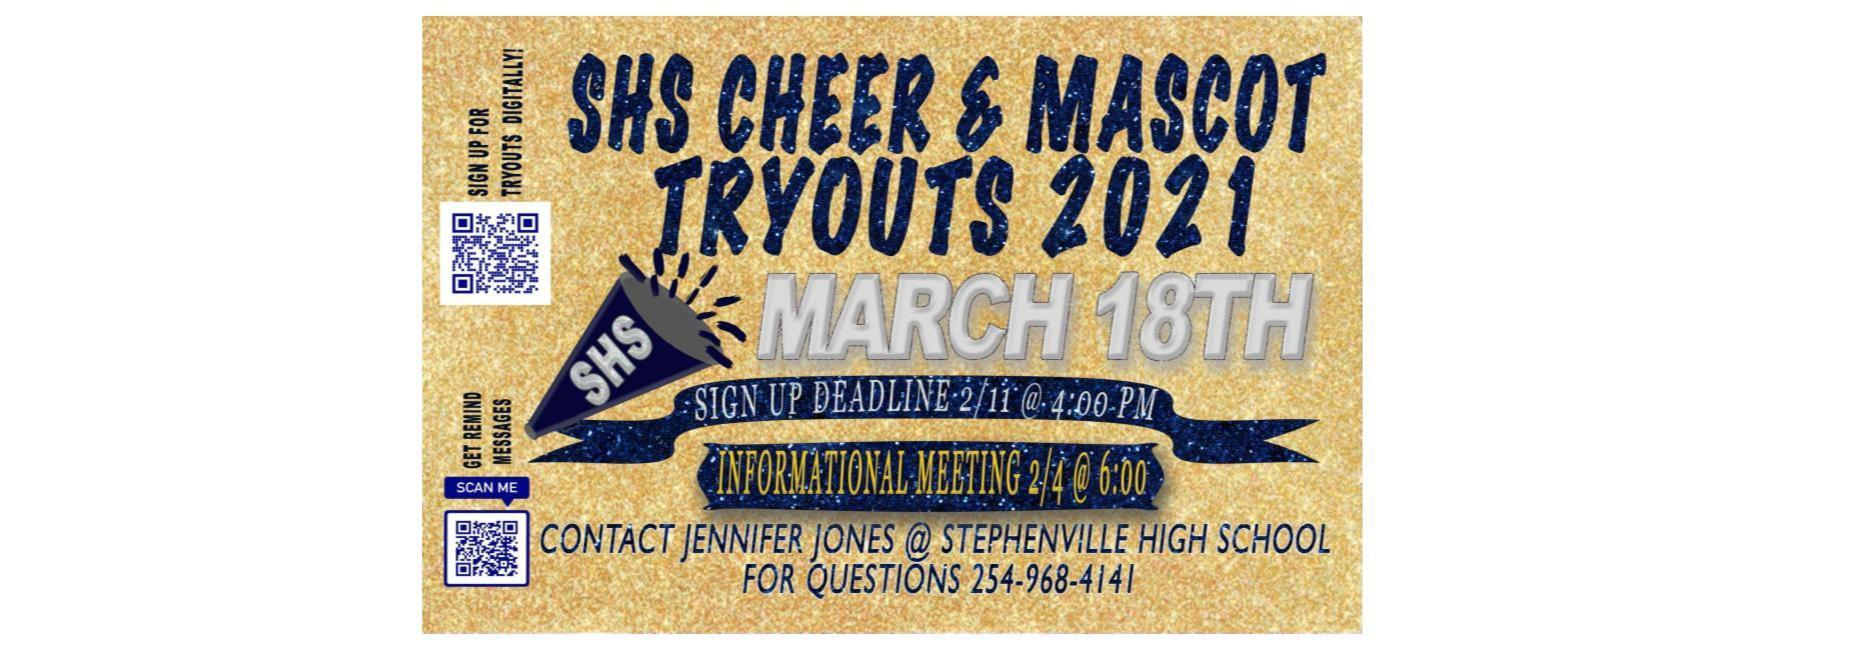 Cheer and mascot tryouts information. See news article below for more information.